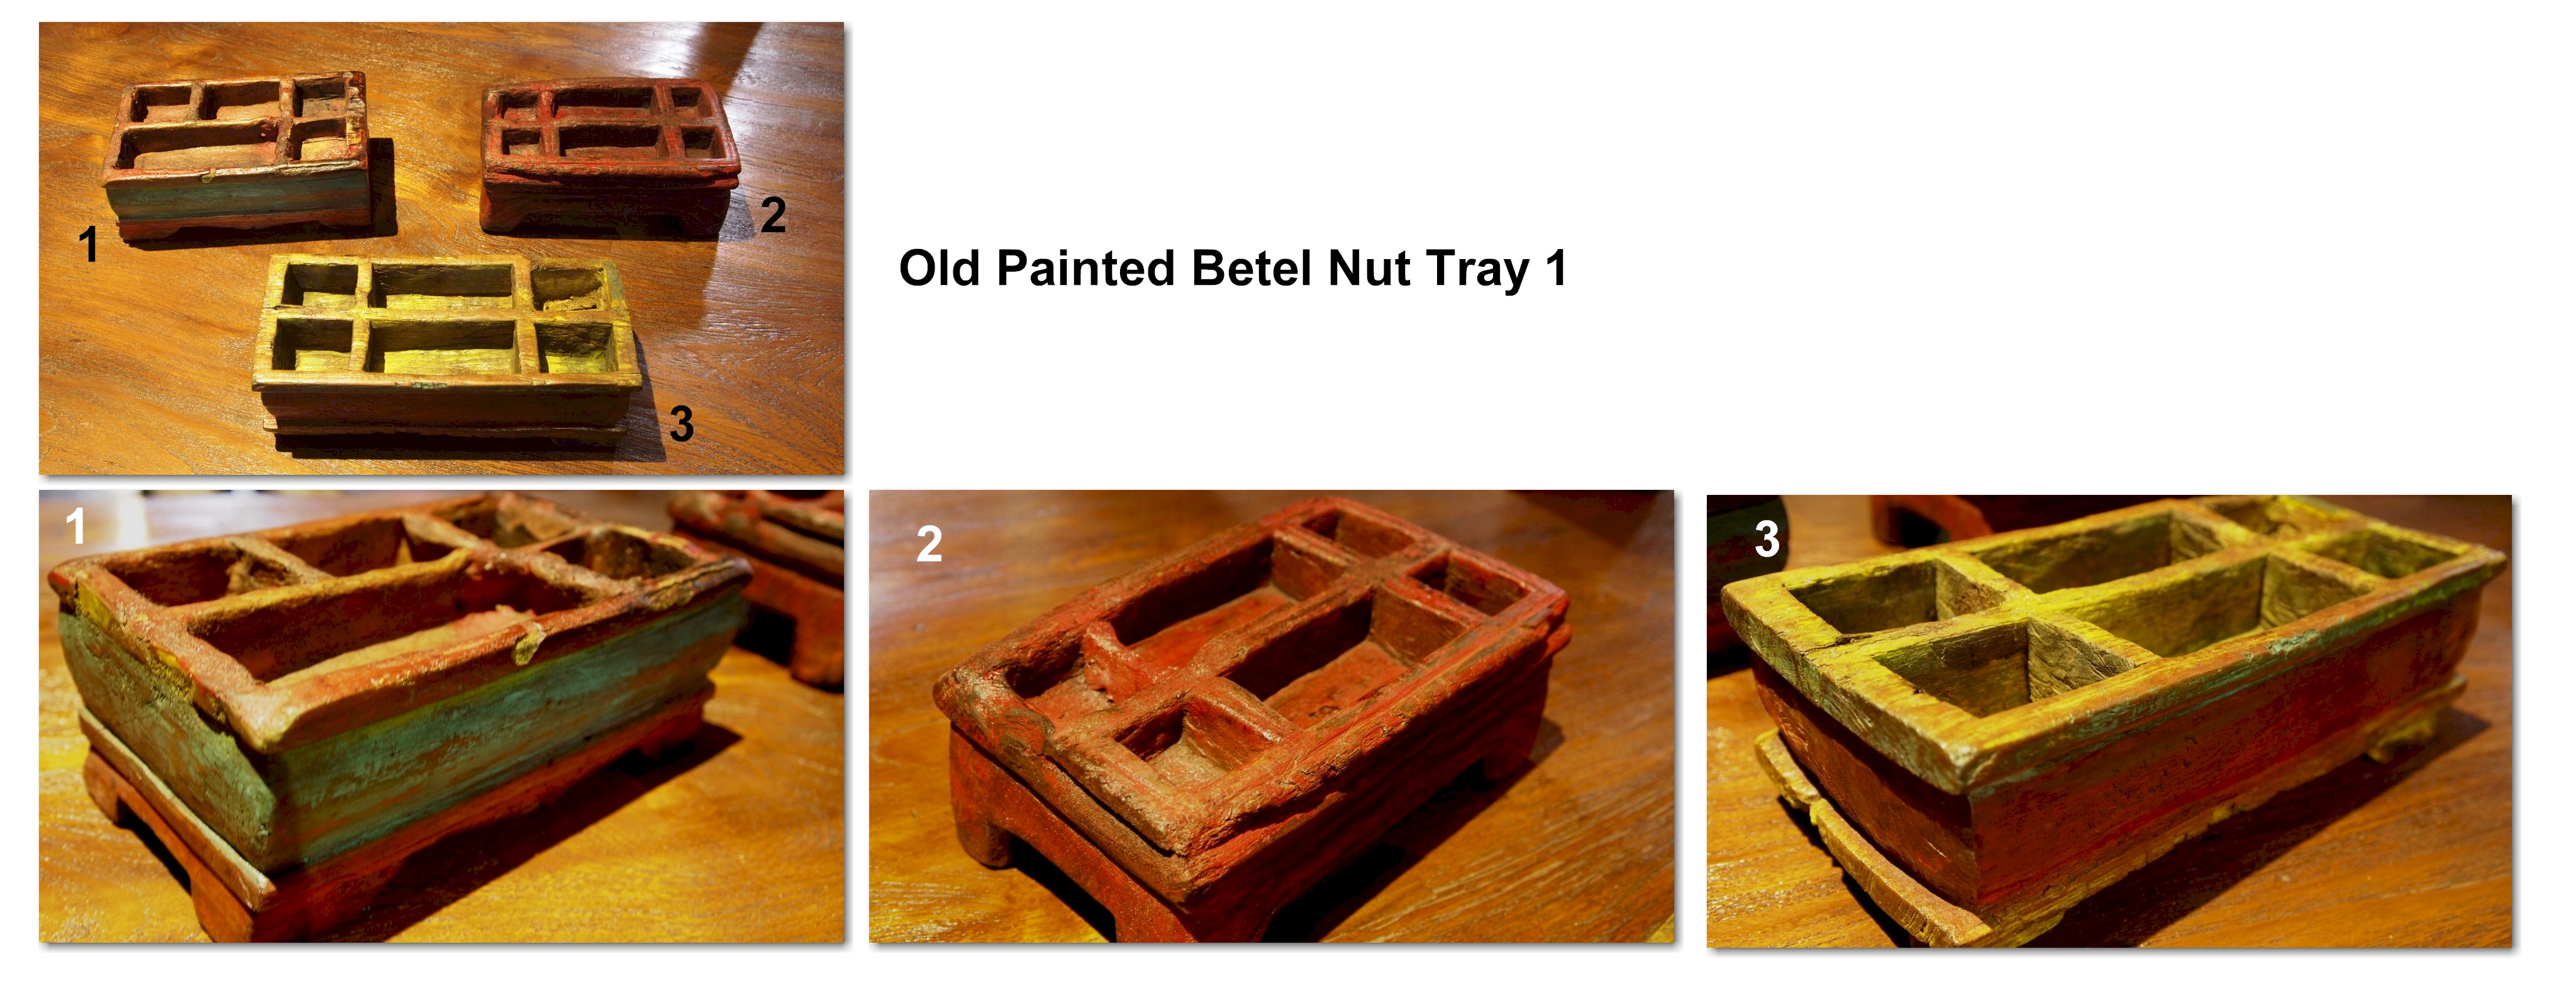 Old Painted Betel Nut Tray 1